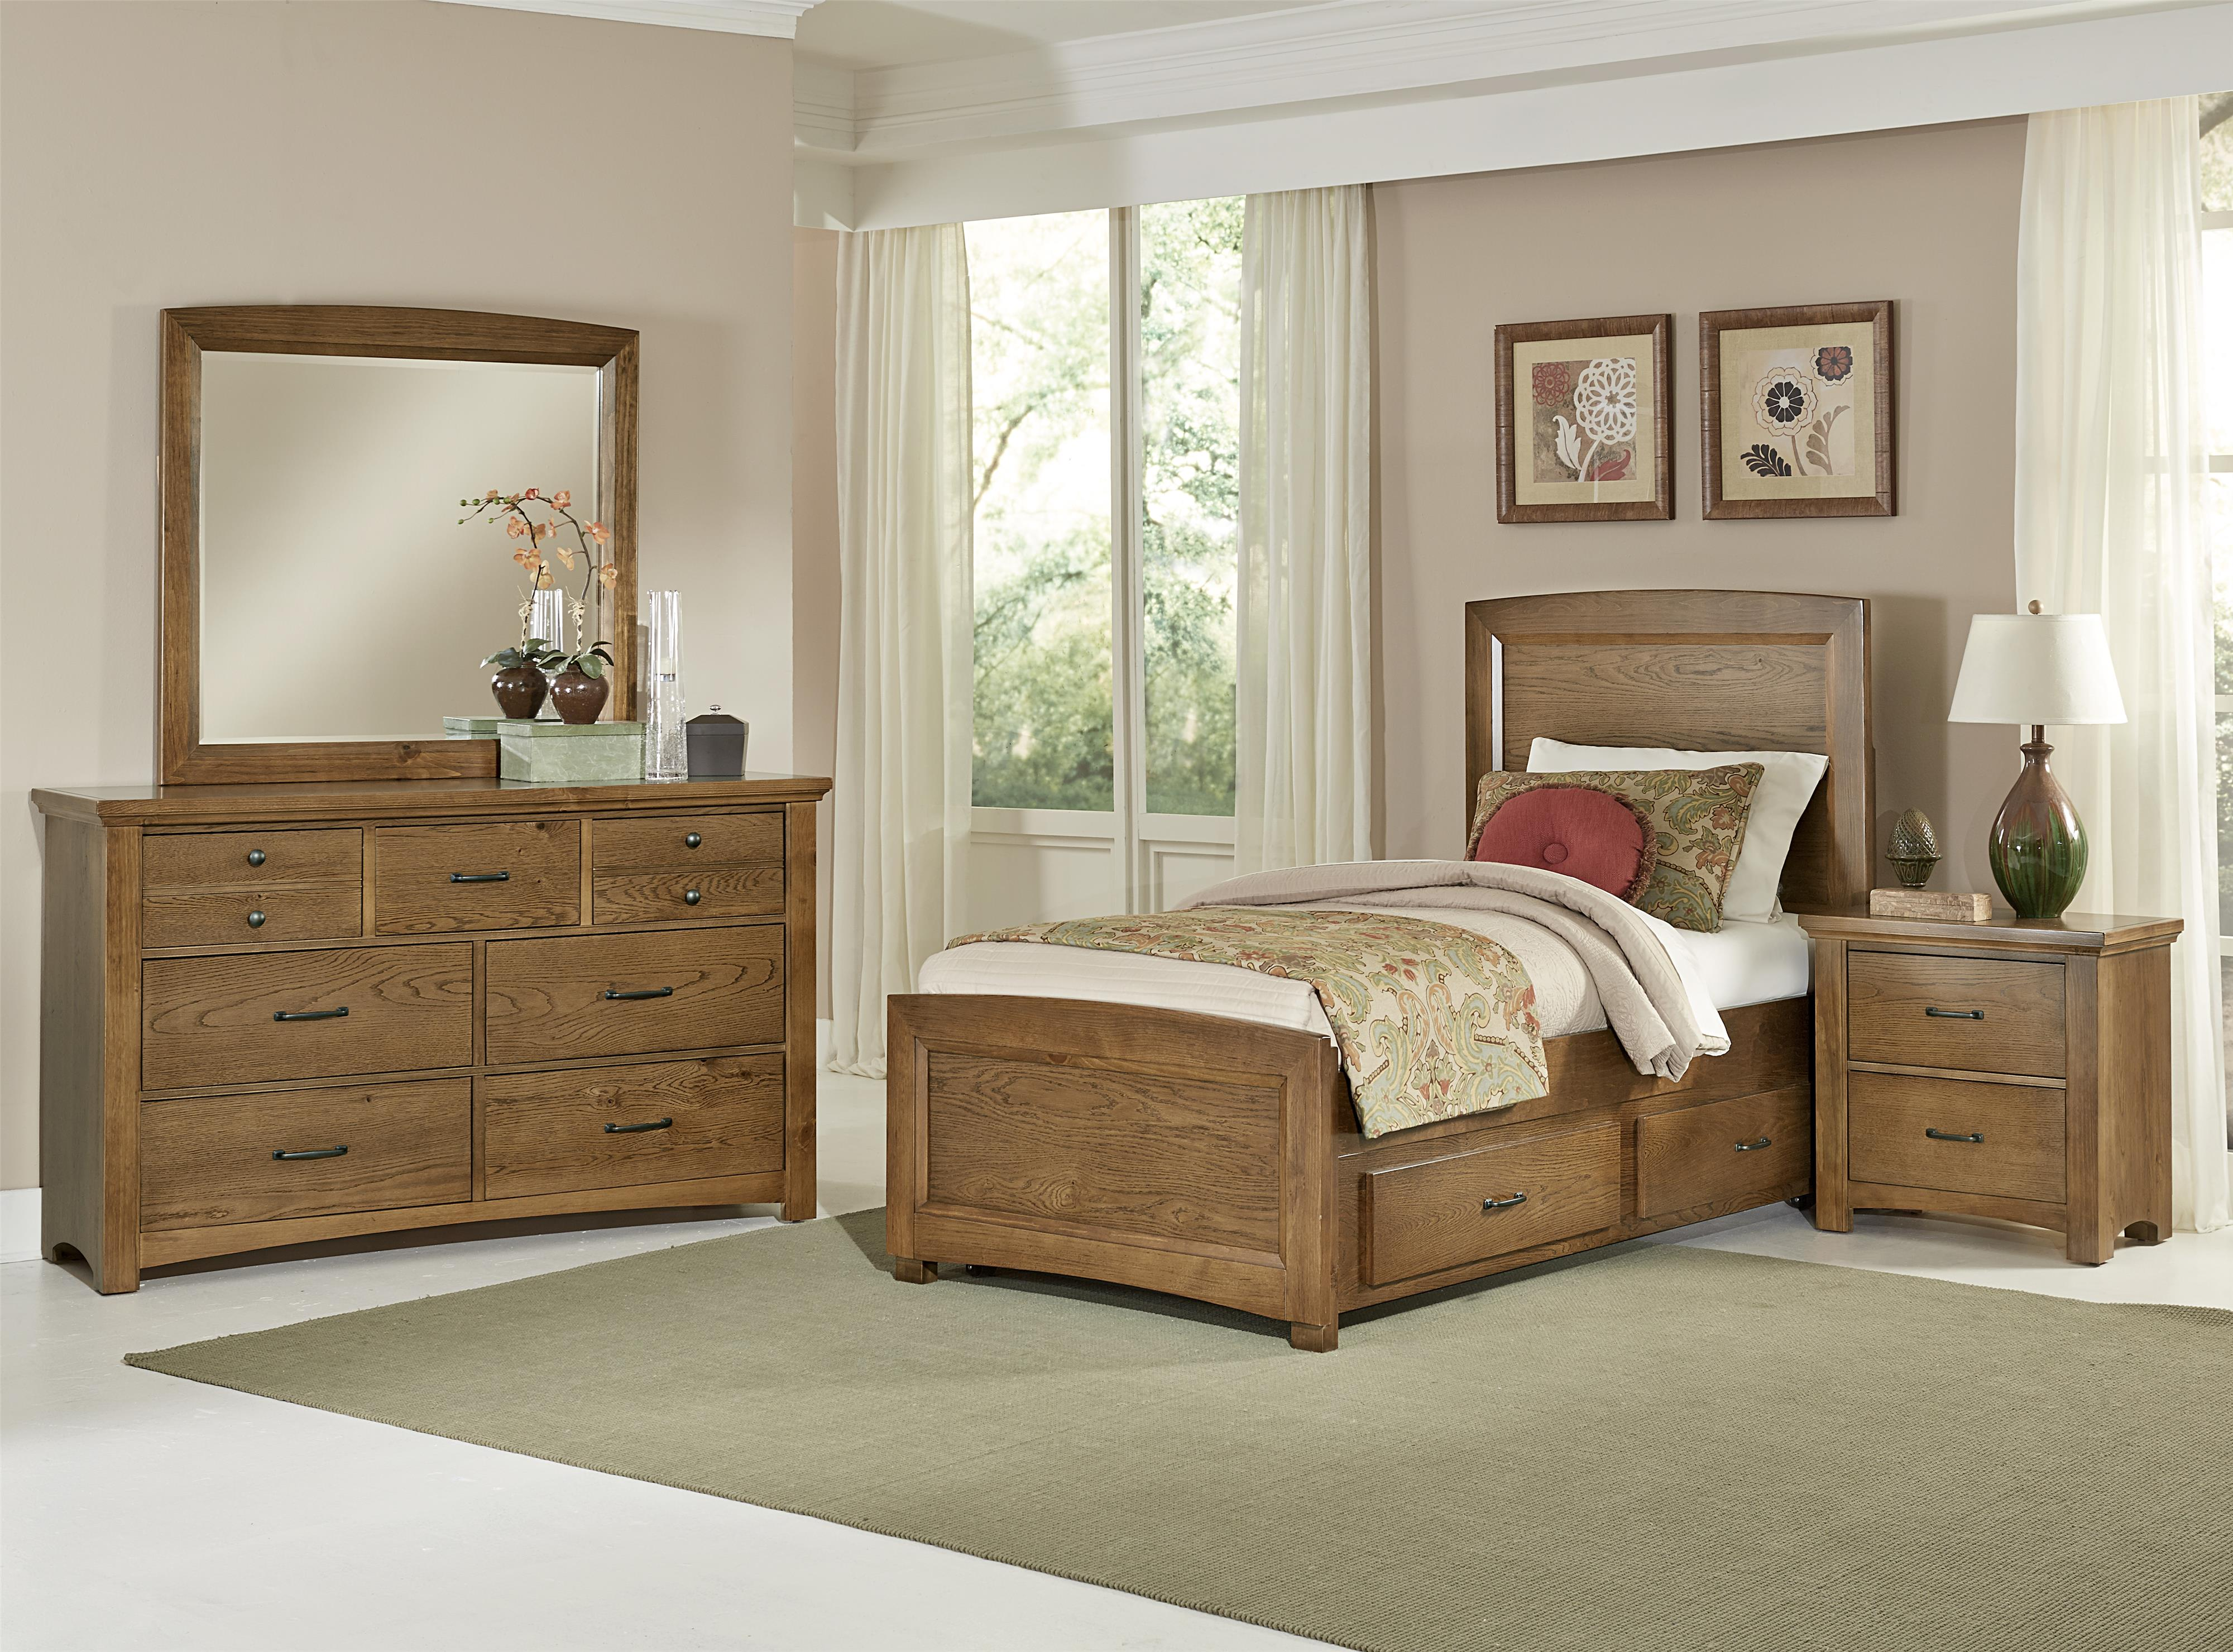 Vaughan Bassett Transitions Twin Bedroom Group - Item Number: BB63 T Bedroom Group 2